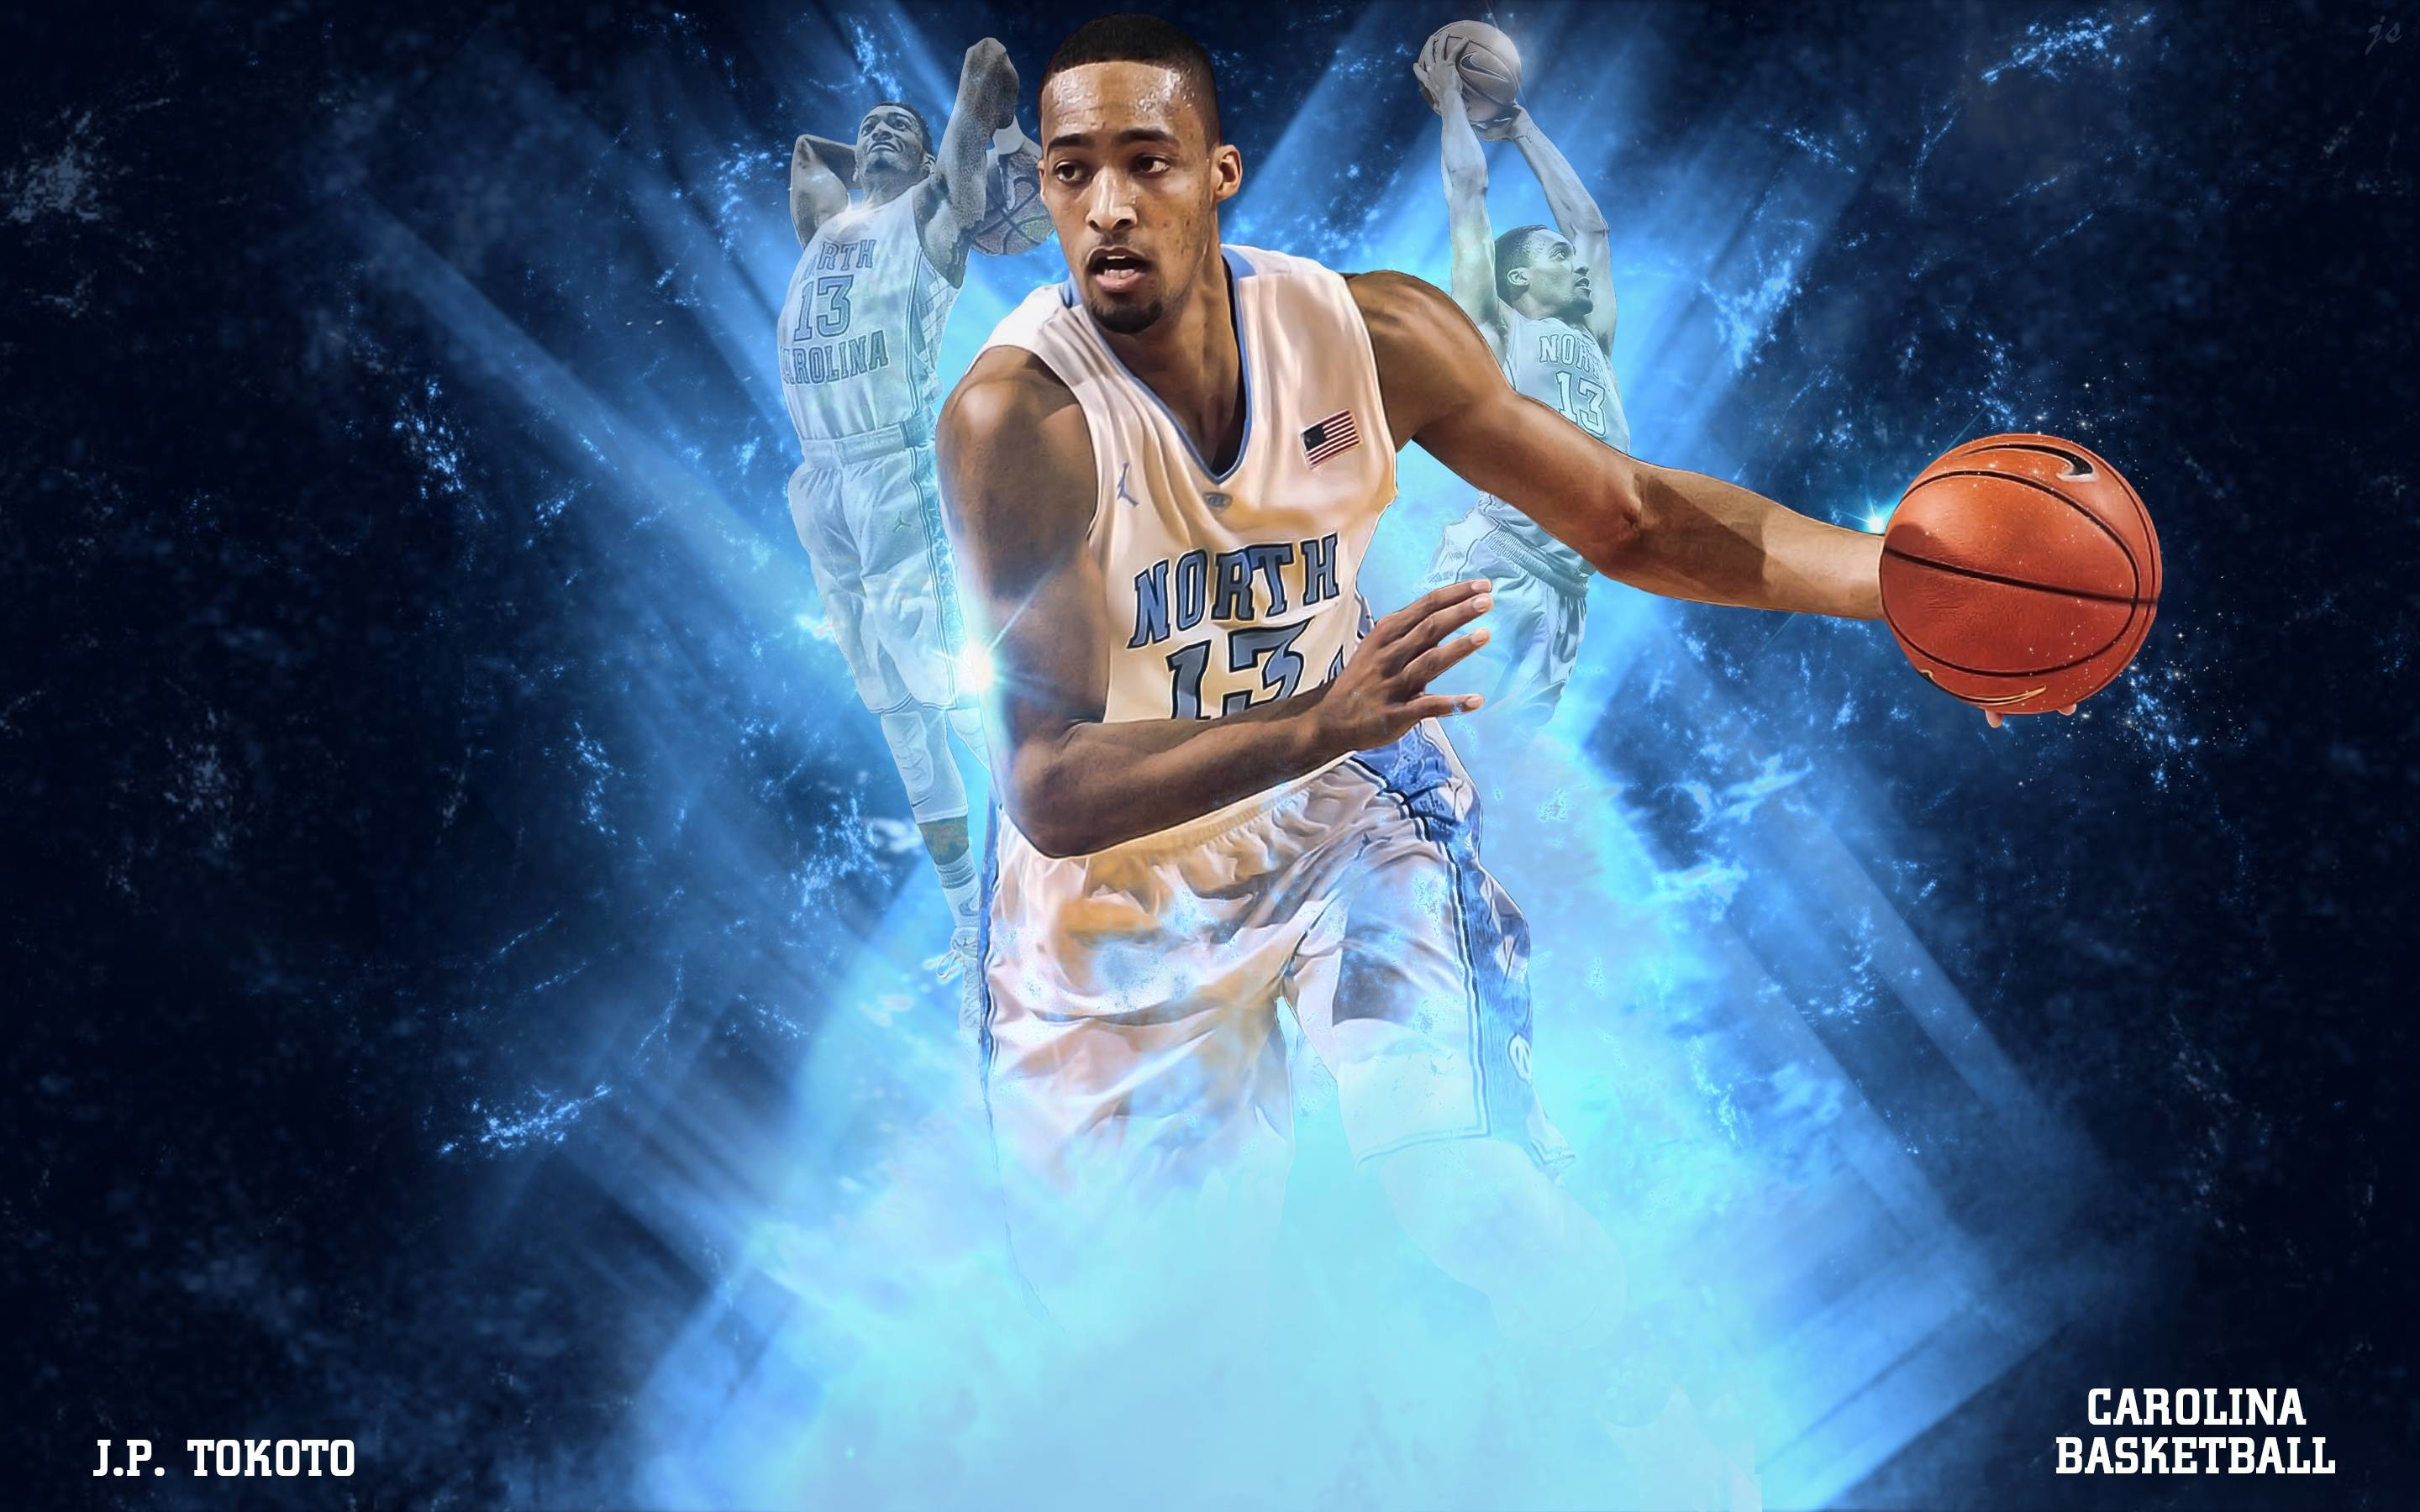 2880x1800 Wallpapers - University of North Carolina Tar Heels Official .